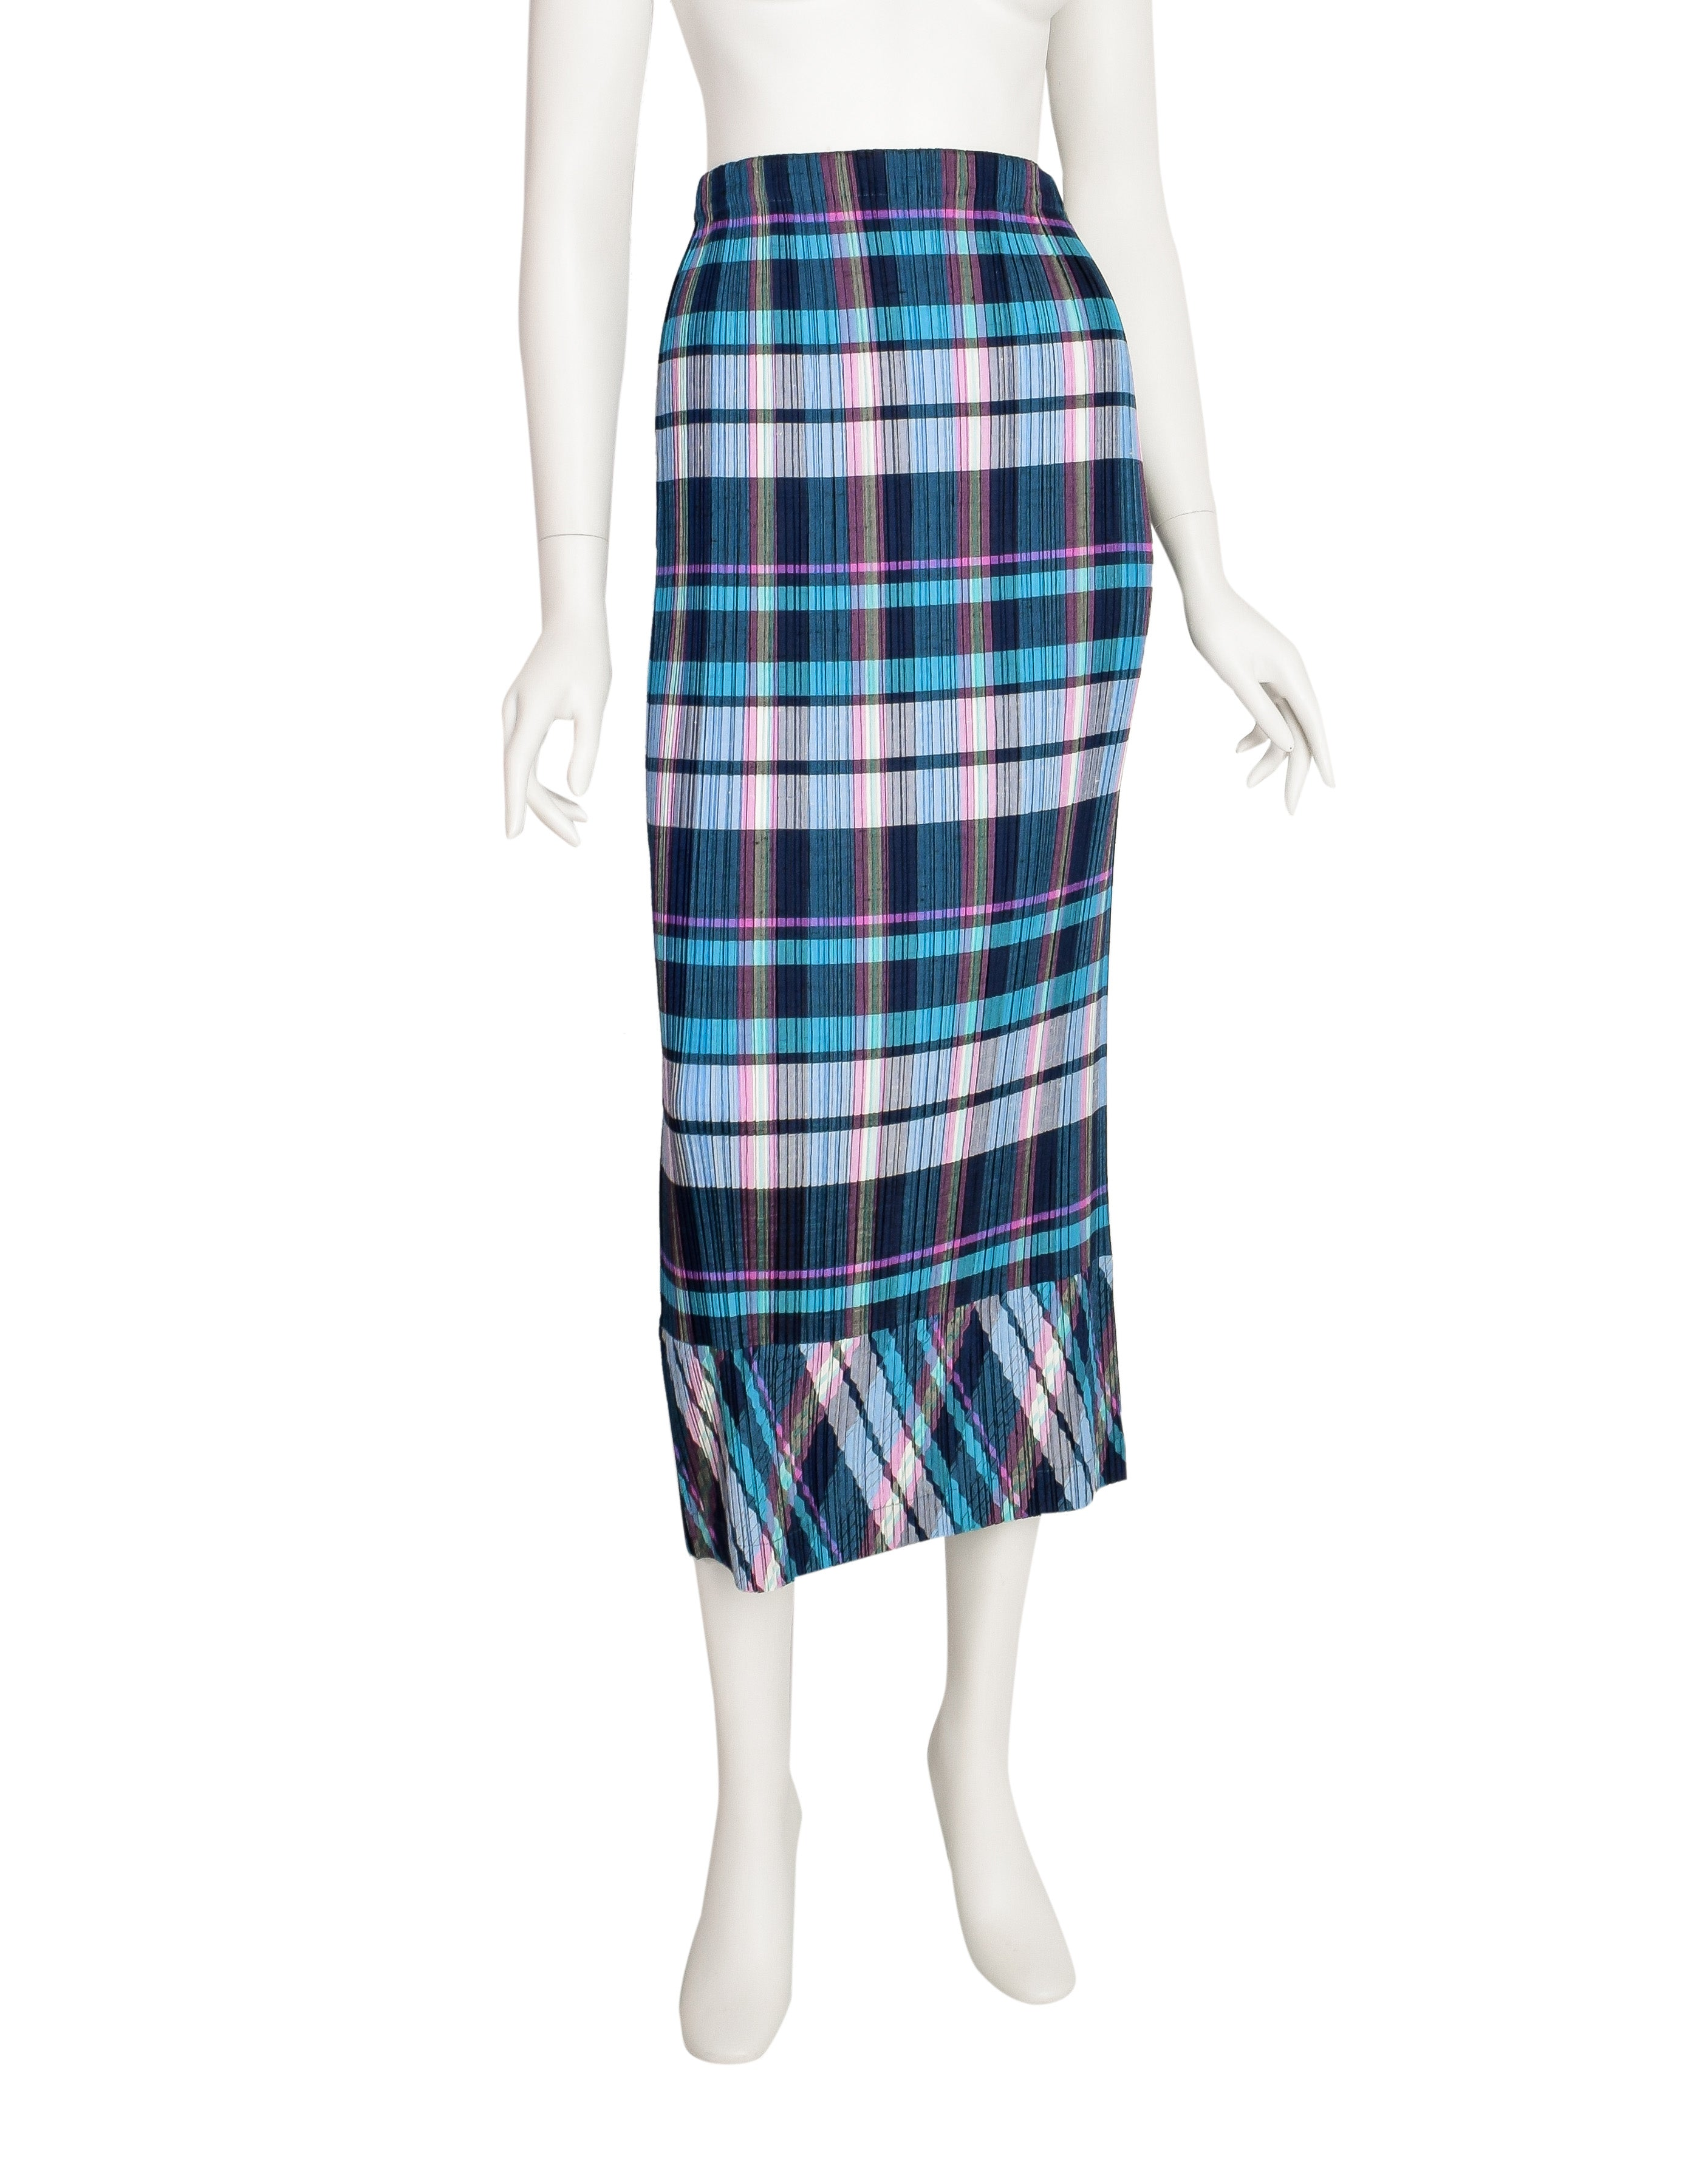 Issey Miyake Vintage Multicolor Plaid Print Pleated Skirt